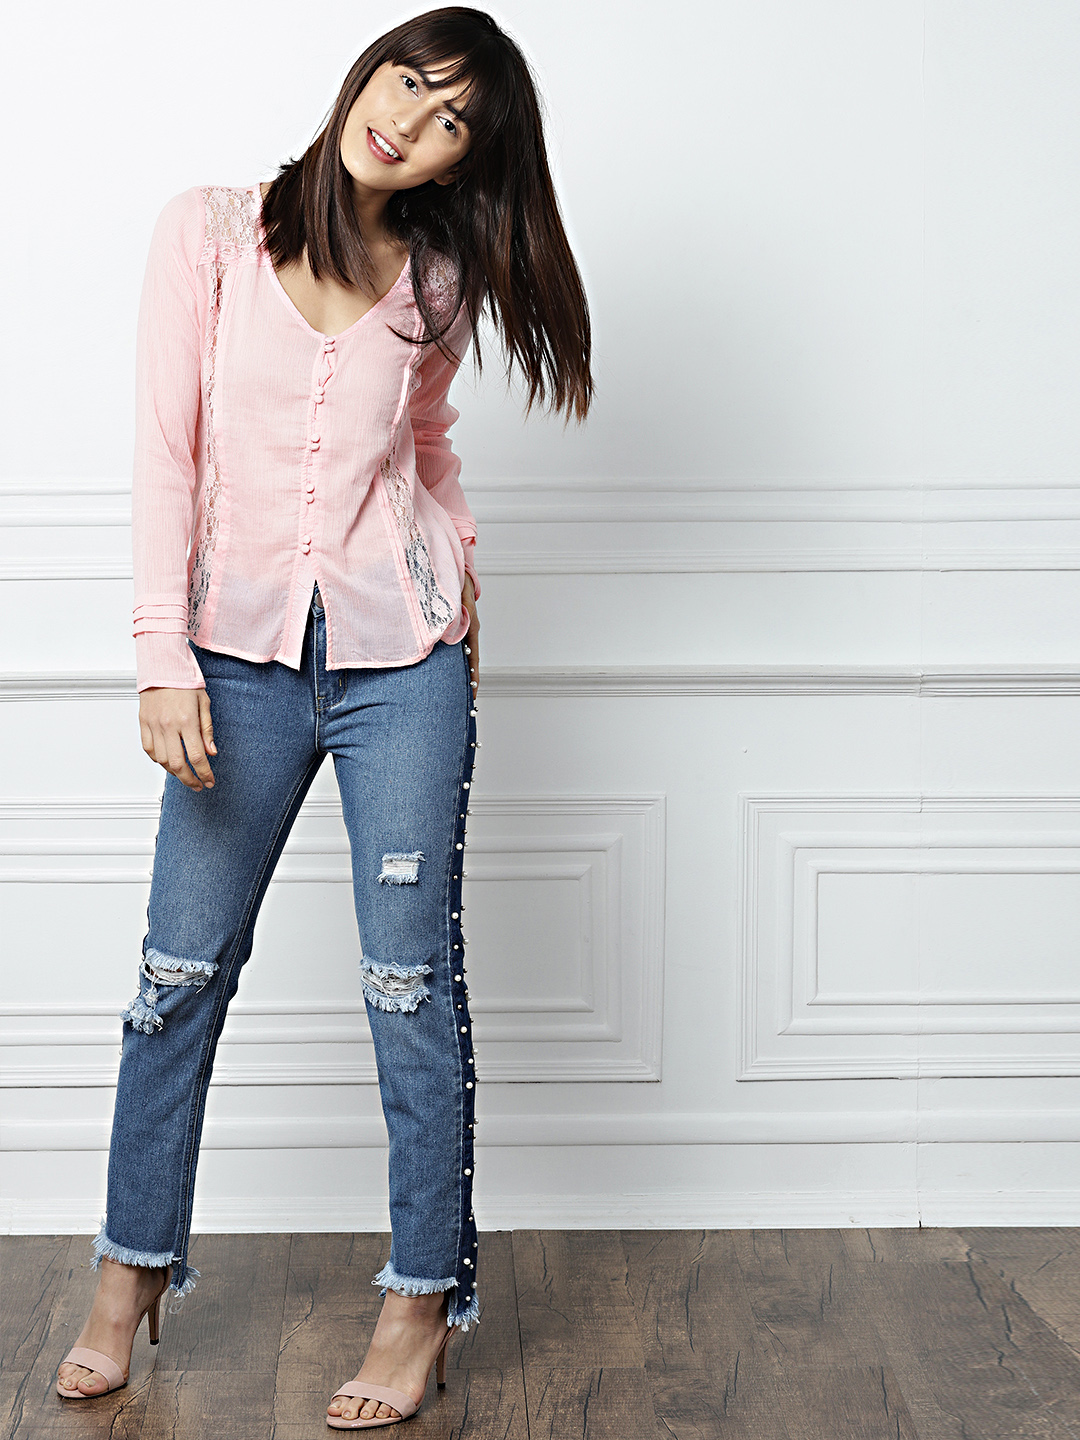 28-types-of-tops-Women-Pink-Solid-Semi-Sheer-Shirt-Style-Top